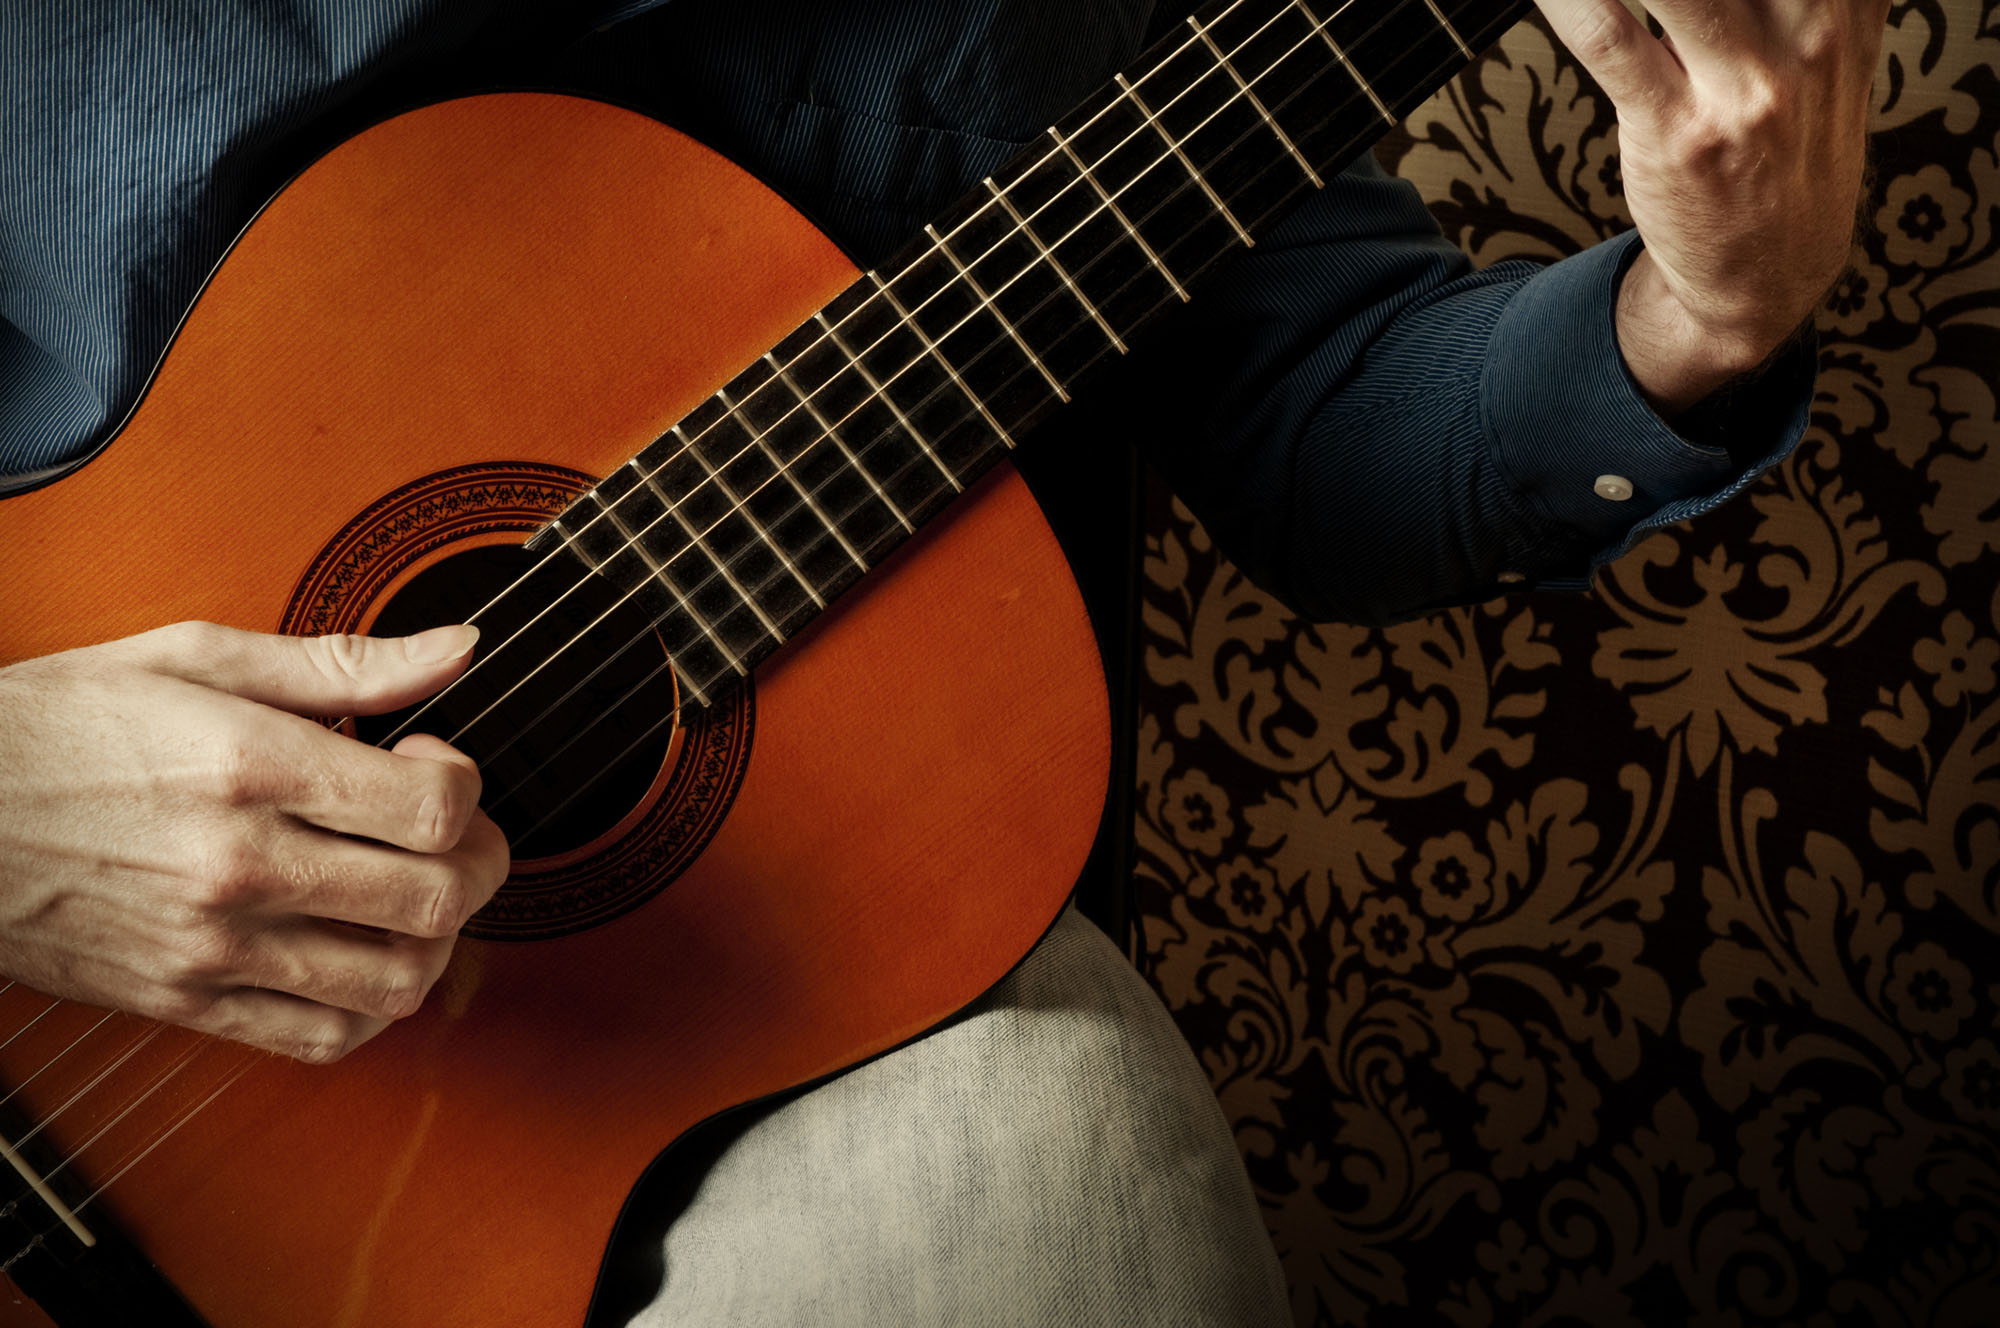 PRIVATE SPANISH GUITAR CONCERT AND DINNER